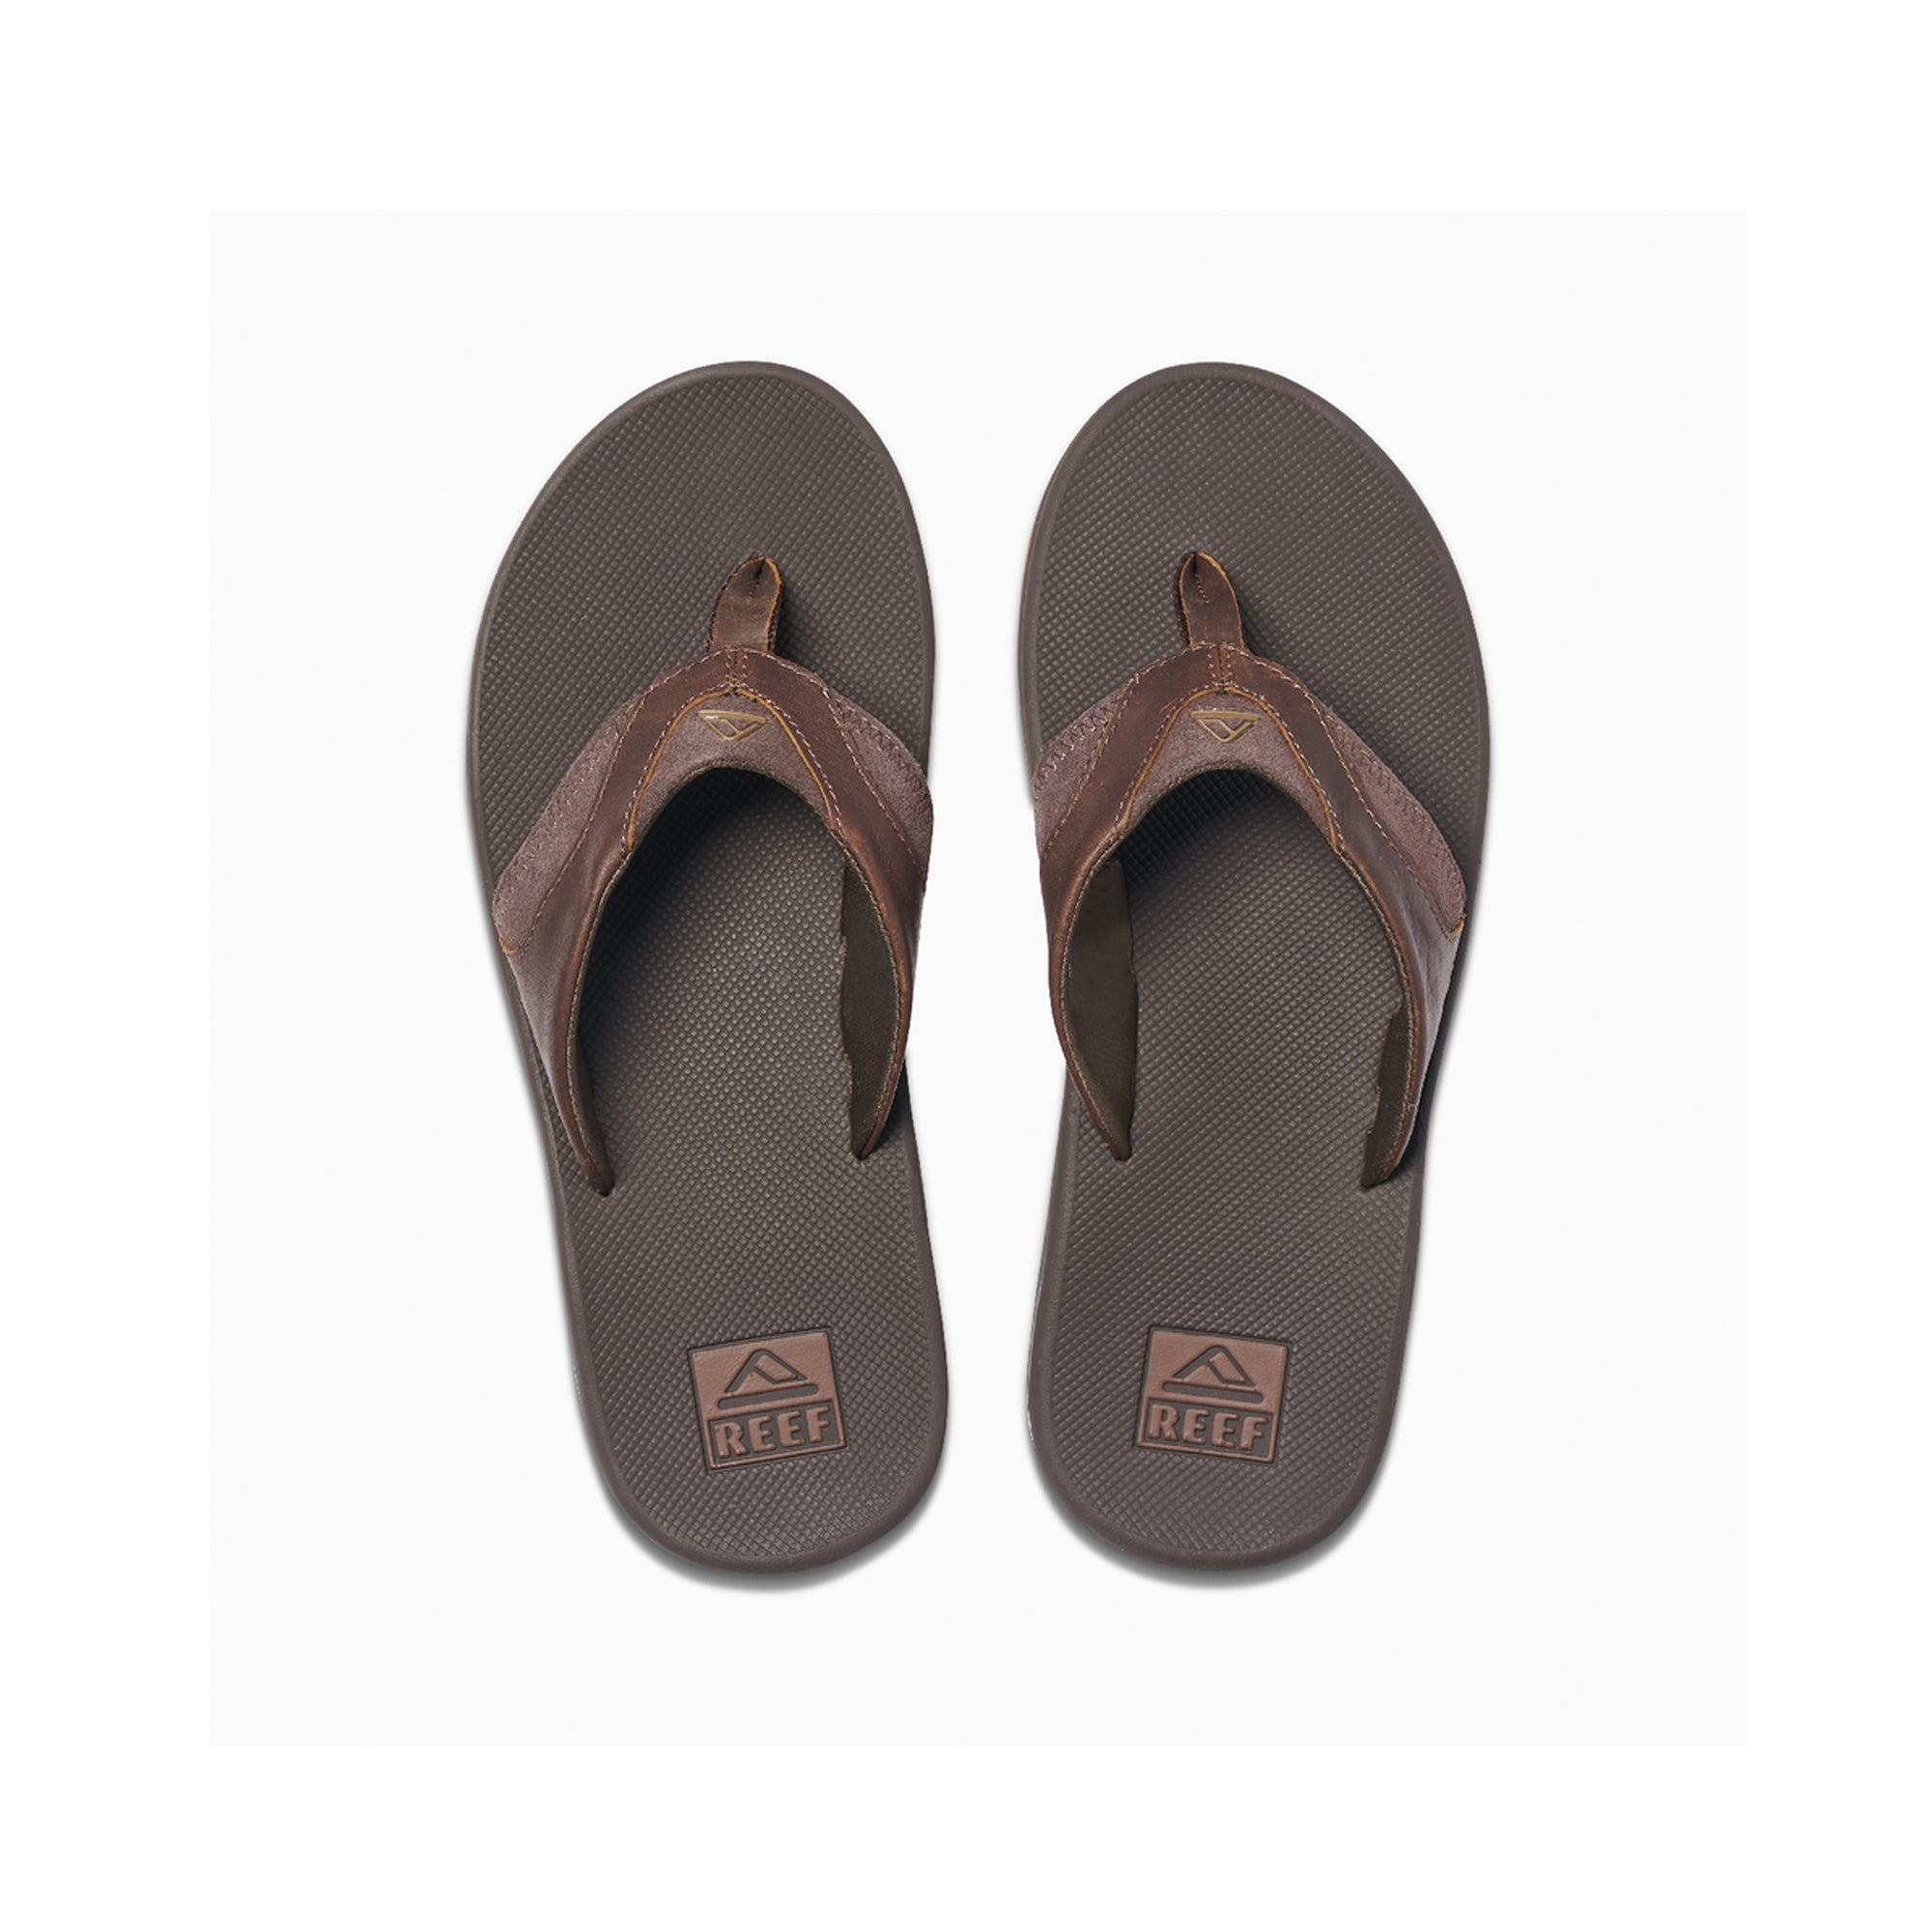 Reef Leather Fanning Men's Sandals